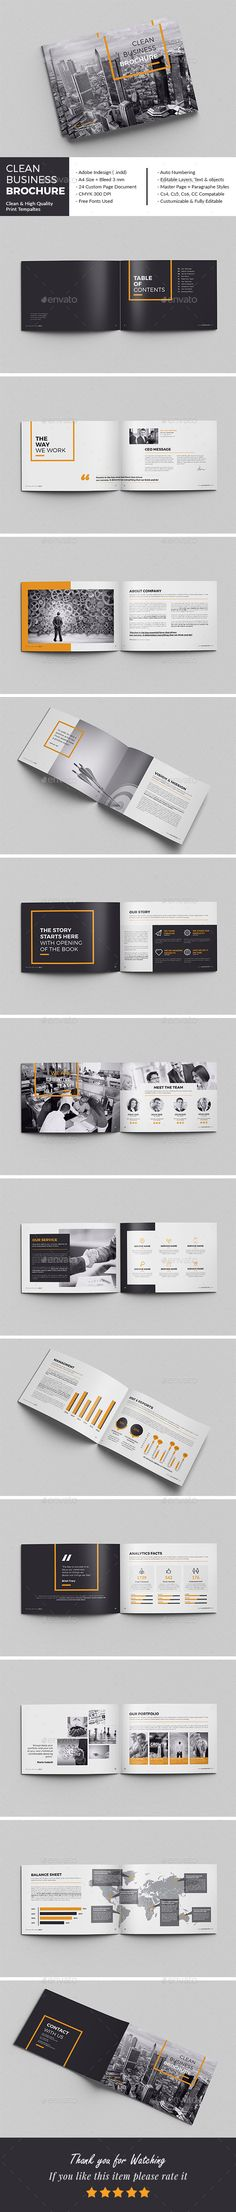 Clean Business Brochure — InDesign Template #identity #modern • Download ➝ https://graphicriver.net/item/clean-business-brochure/18101180?ref=pxcr